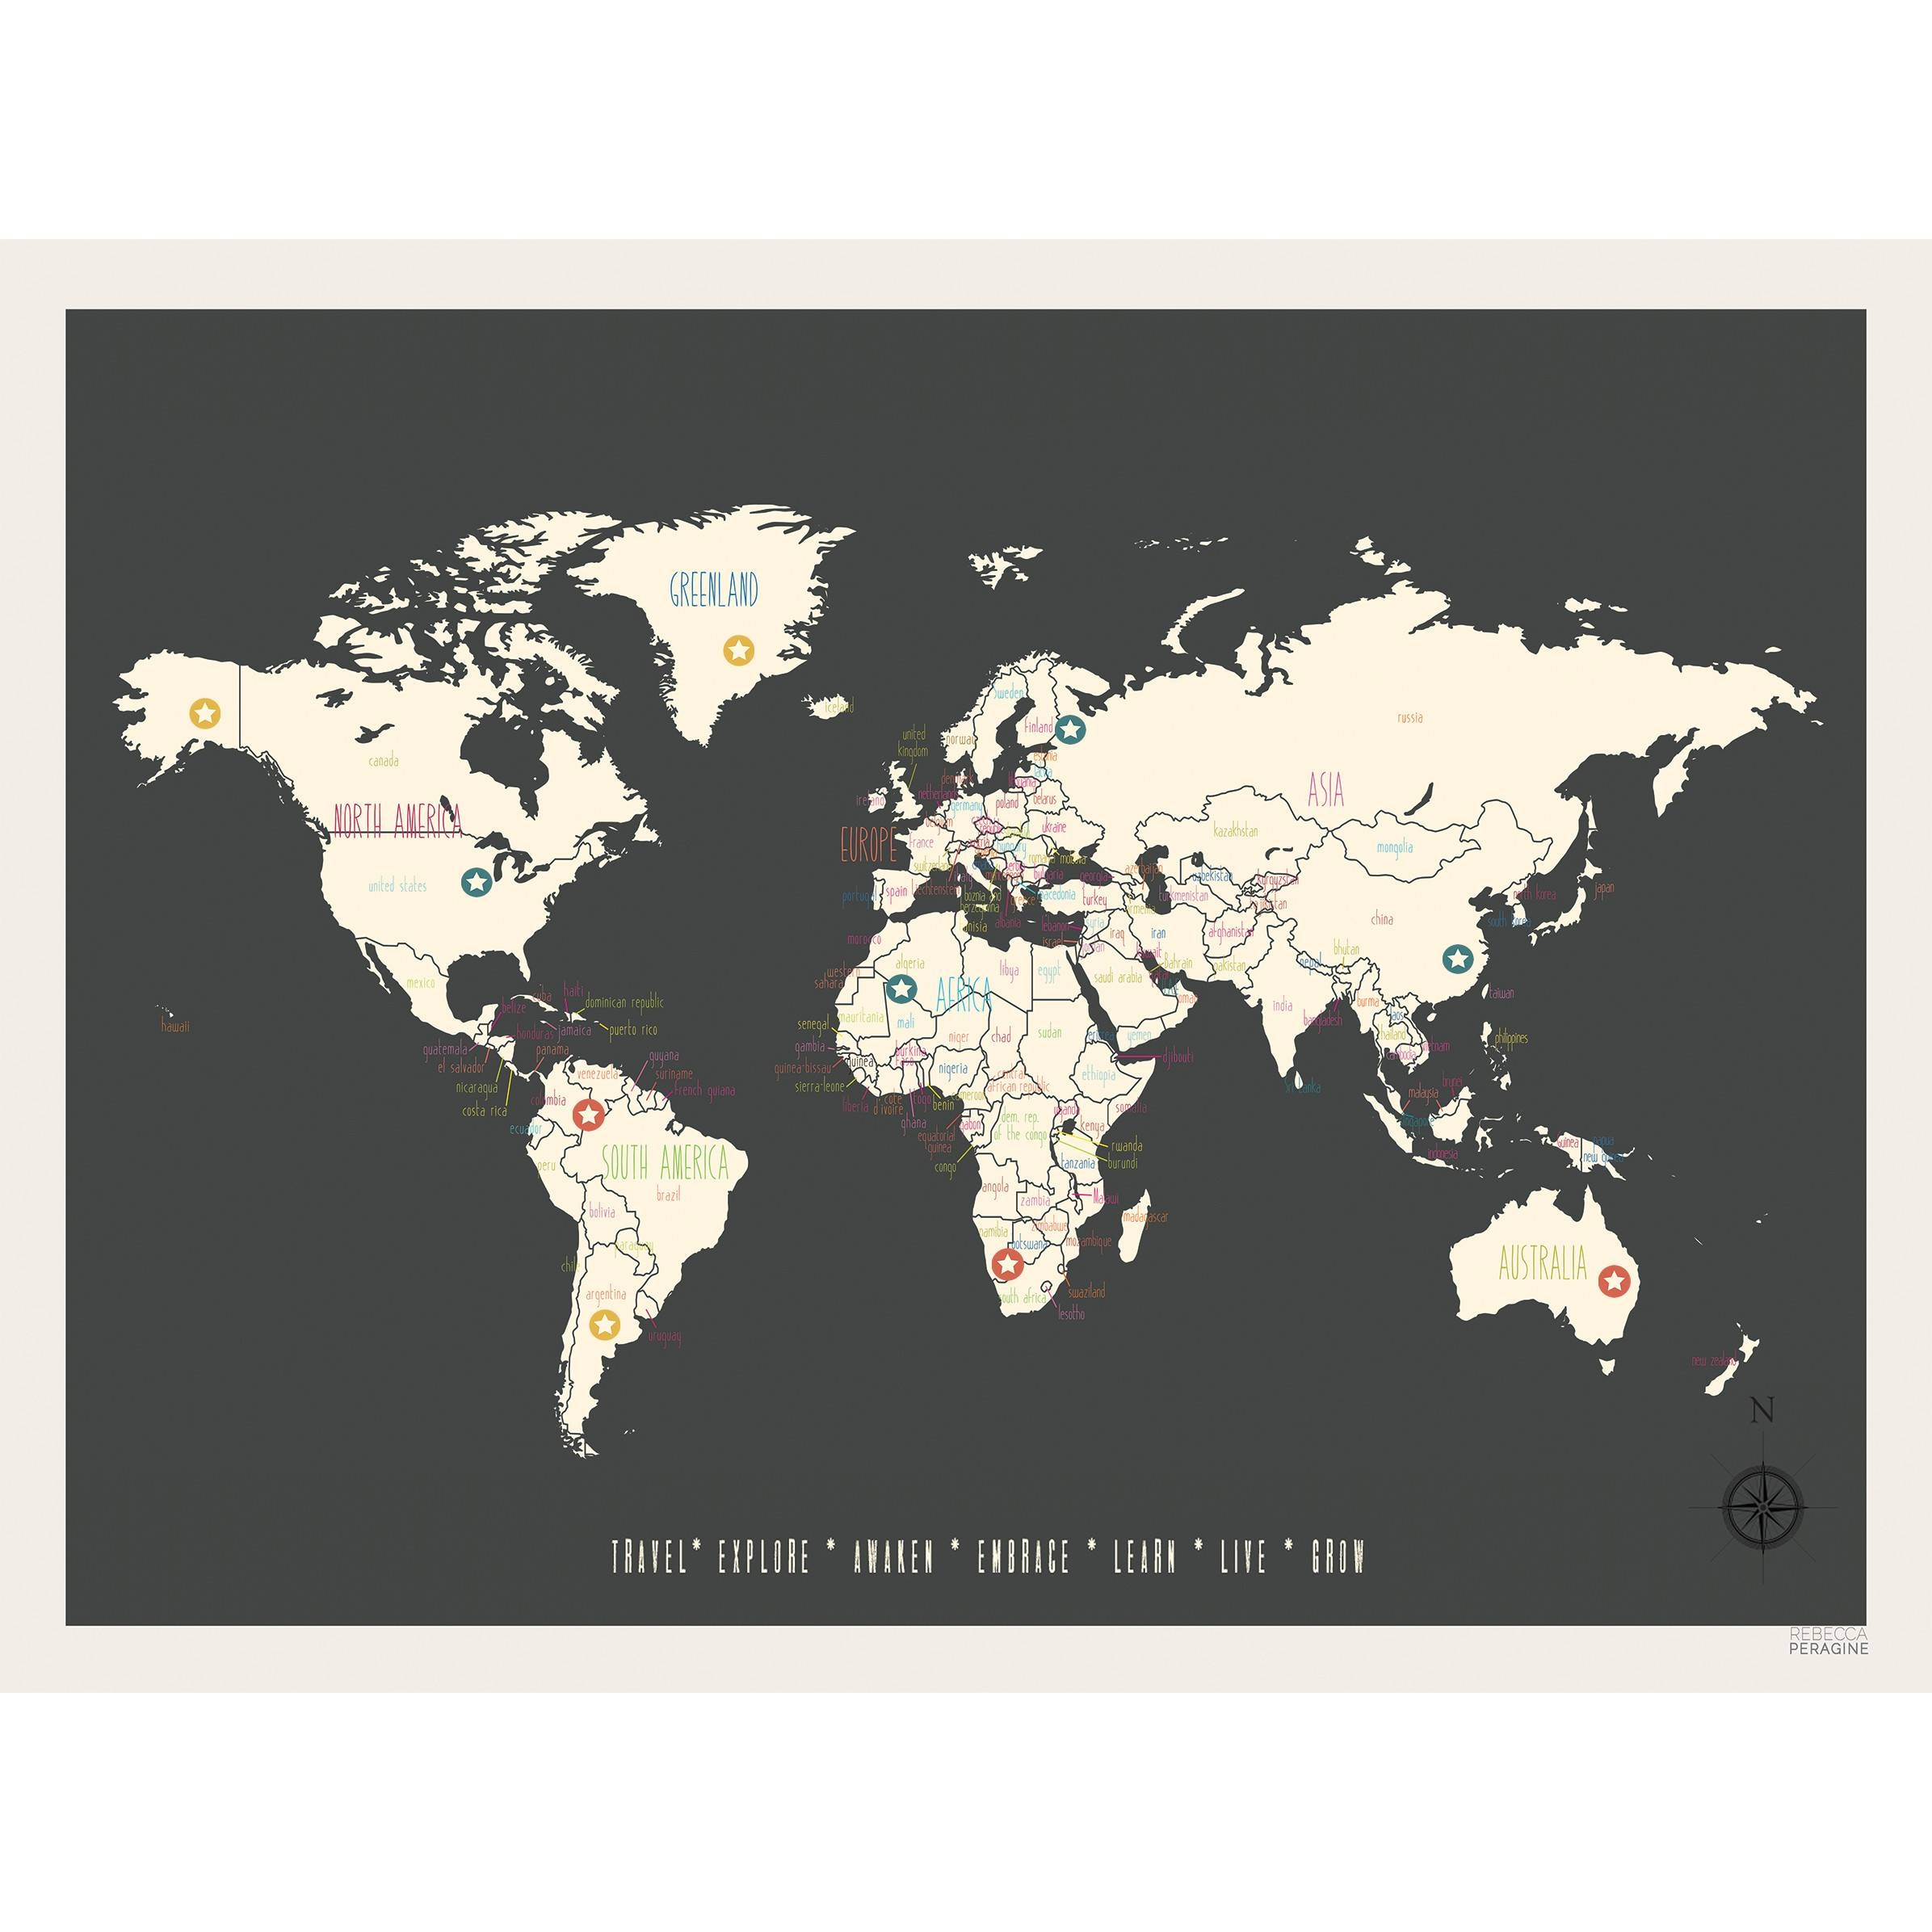 All Wall Art Wayfair Vintage Personalized World Travel Map Graphic Pertaining To Best And Newest Travel Map Wall Art (View 1 of 20)